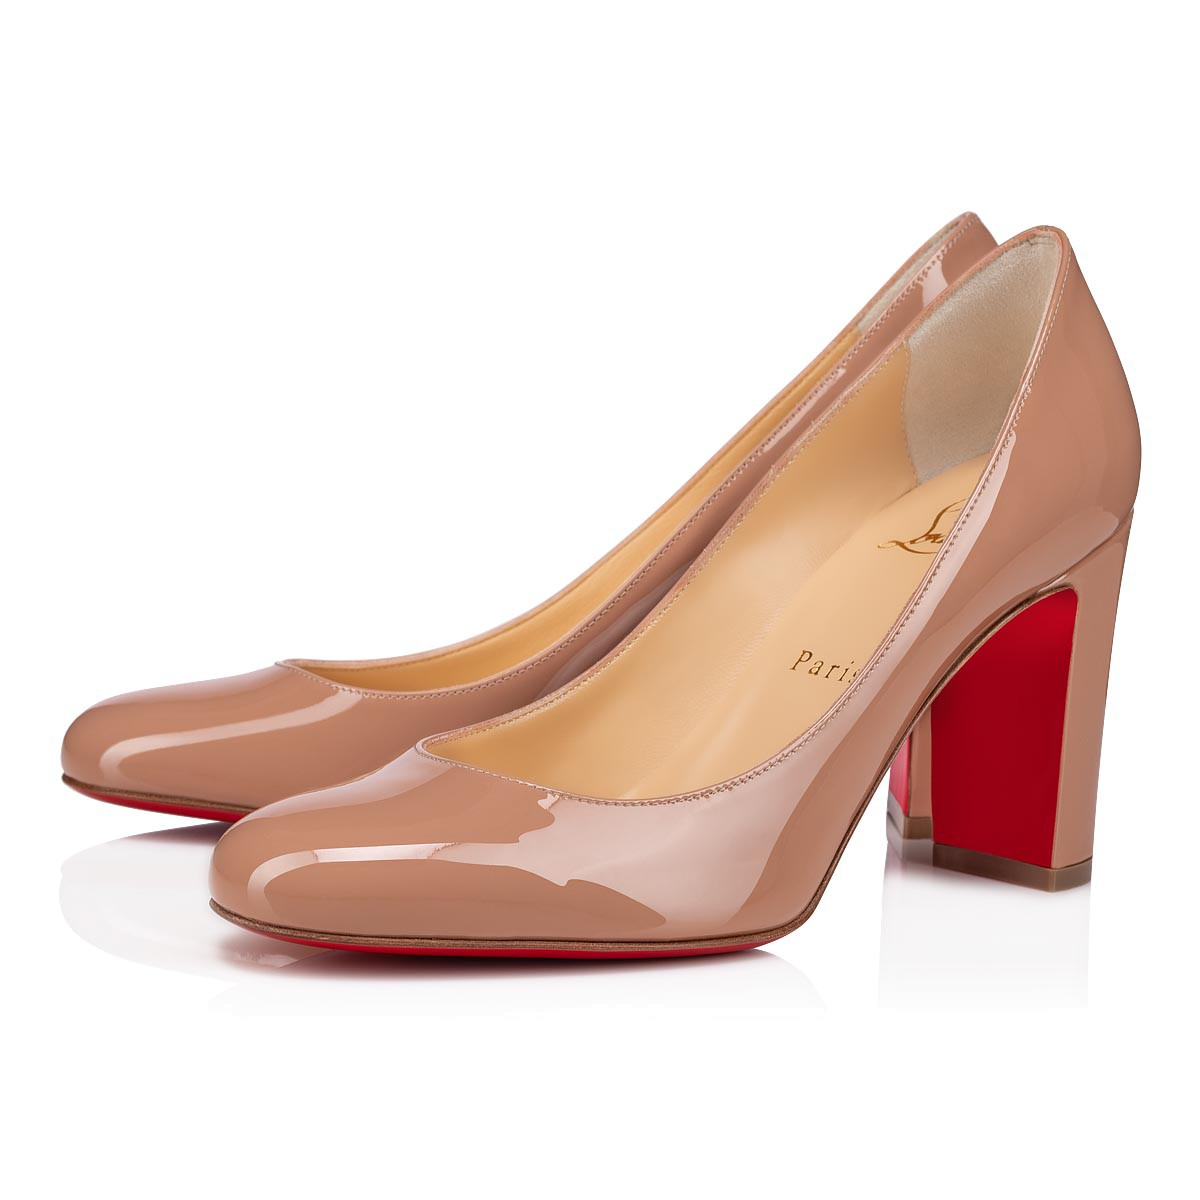 LADY GENA 85 NUDE PATENT - Women Shoes